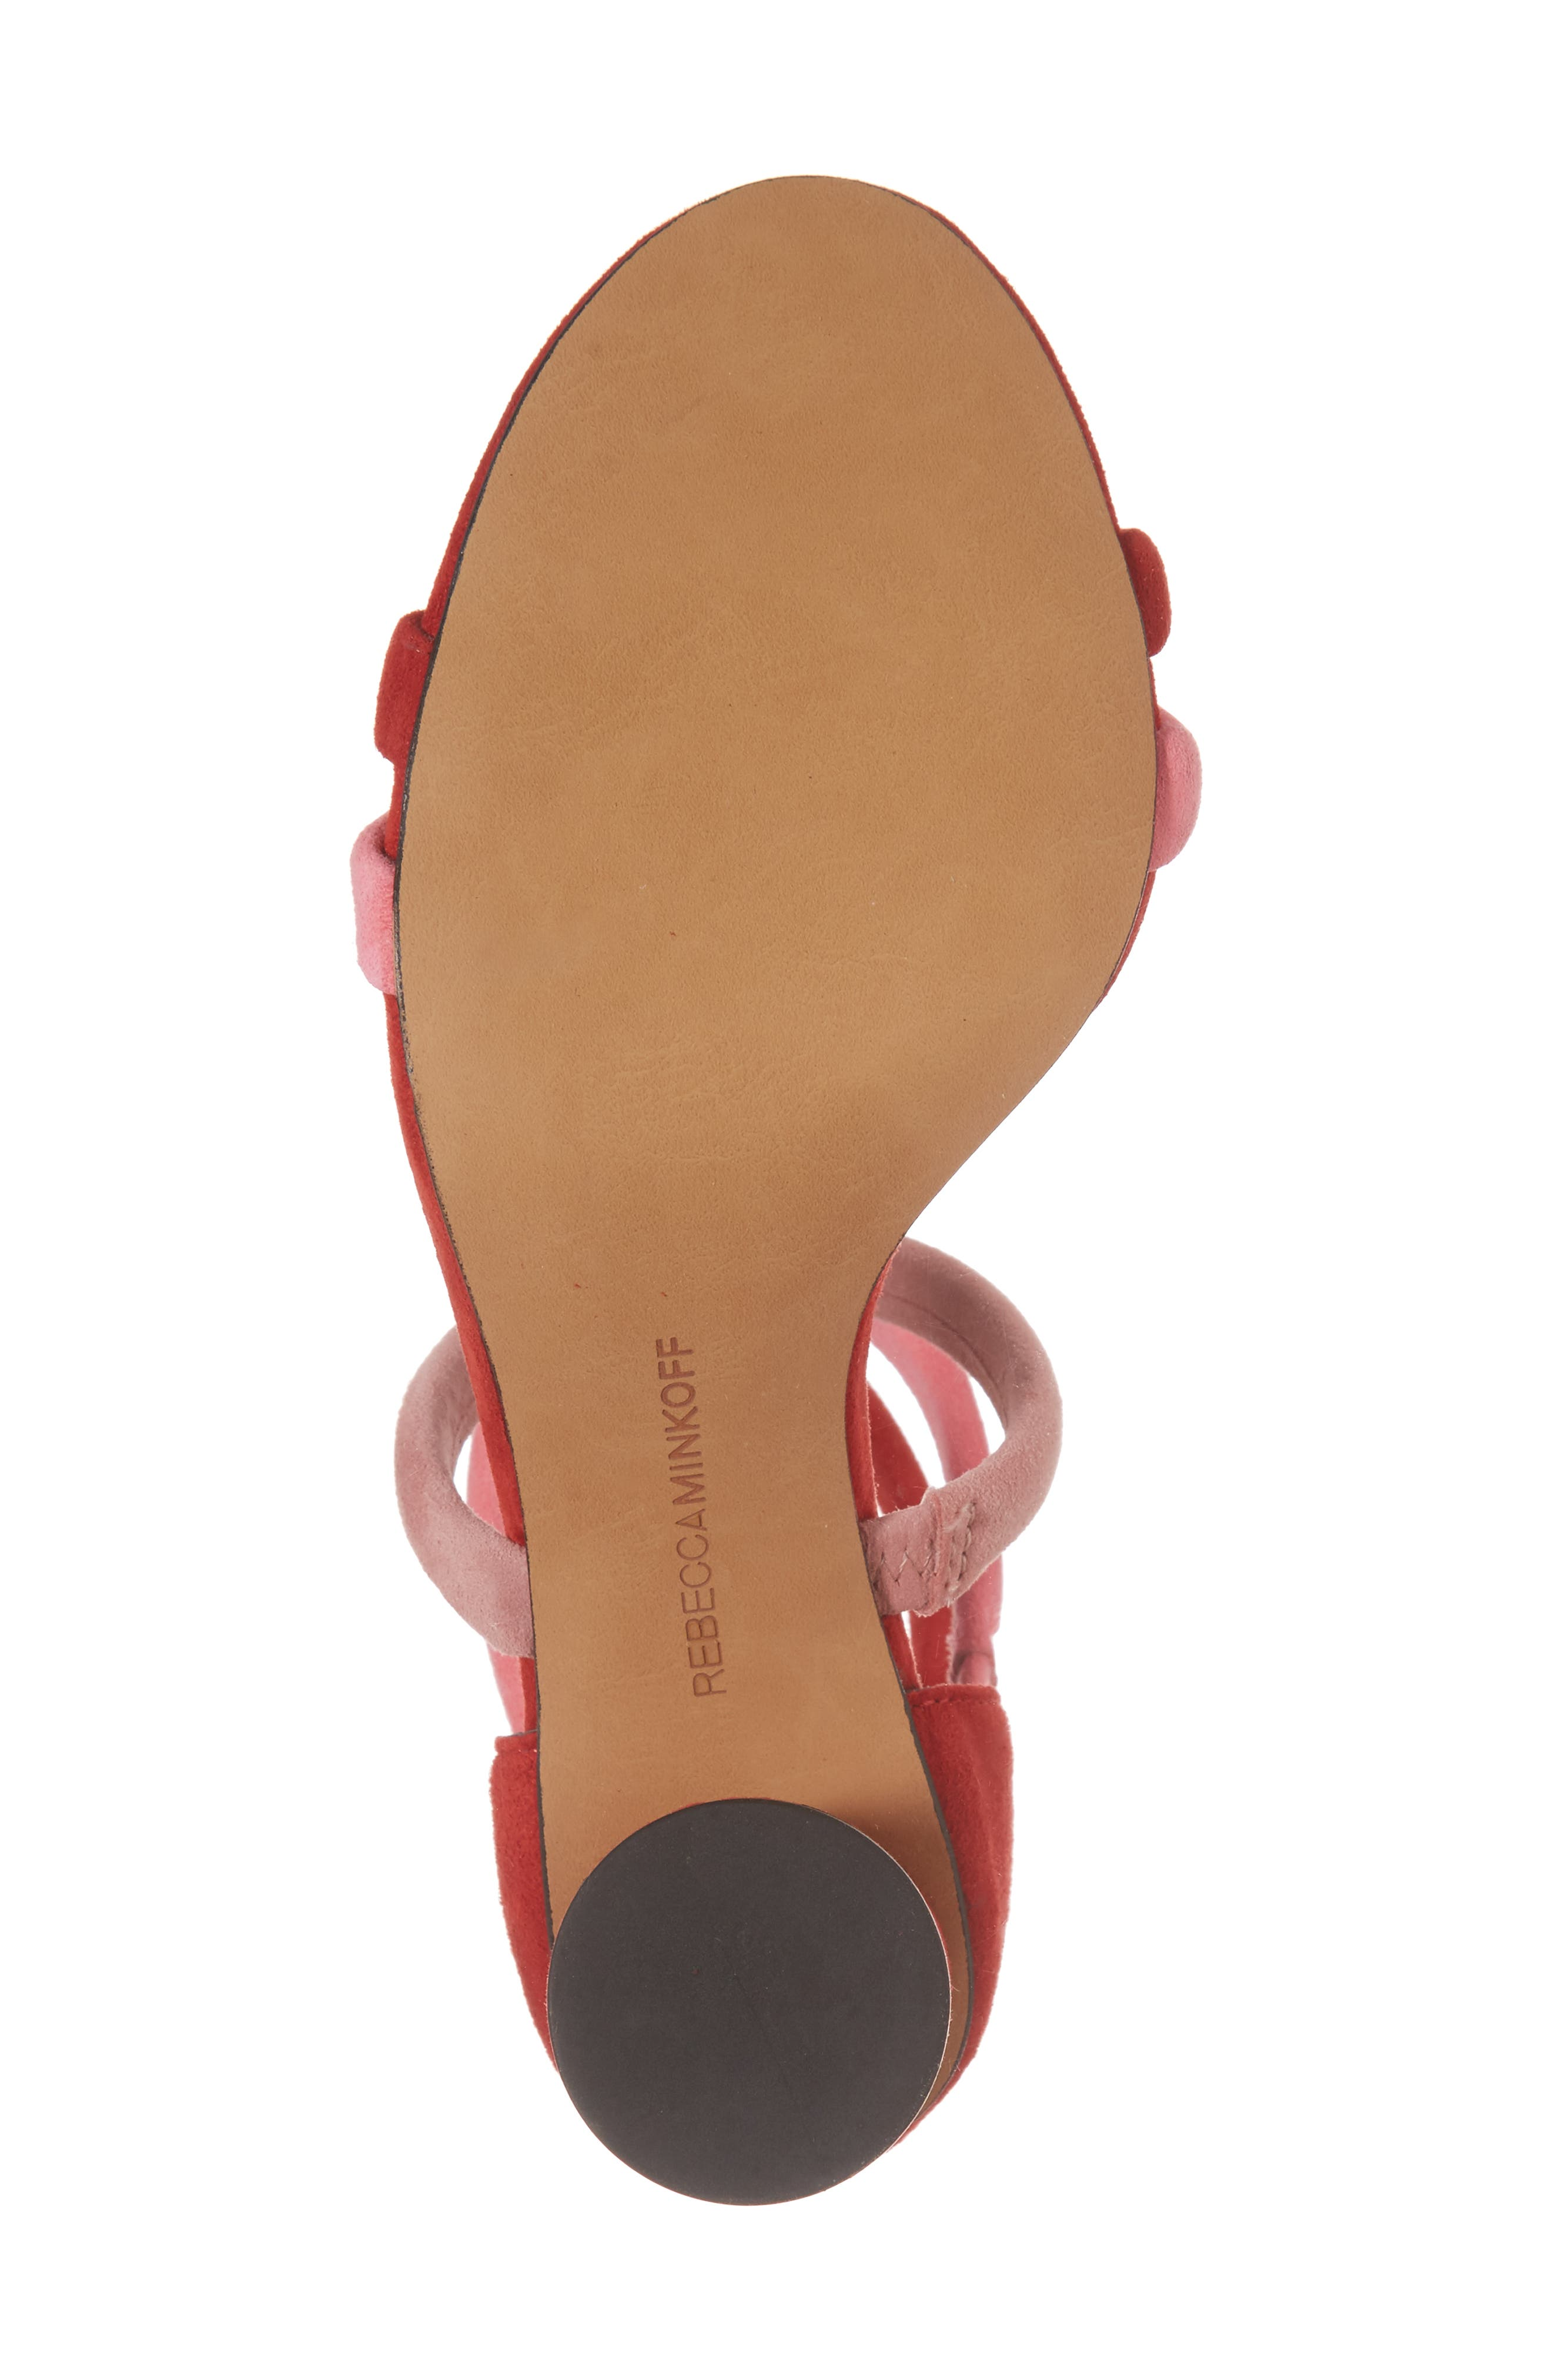 Andree Sandal,                             Alternate thumbnail 6, color,                             Cherry Suede